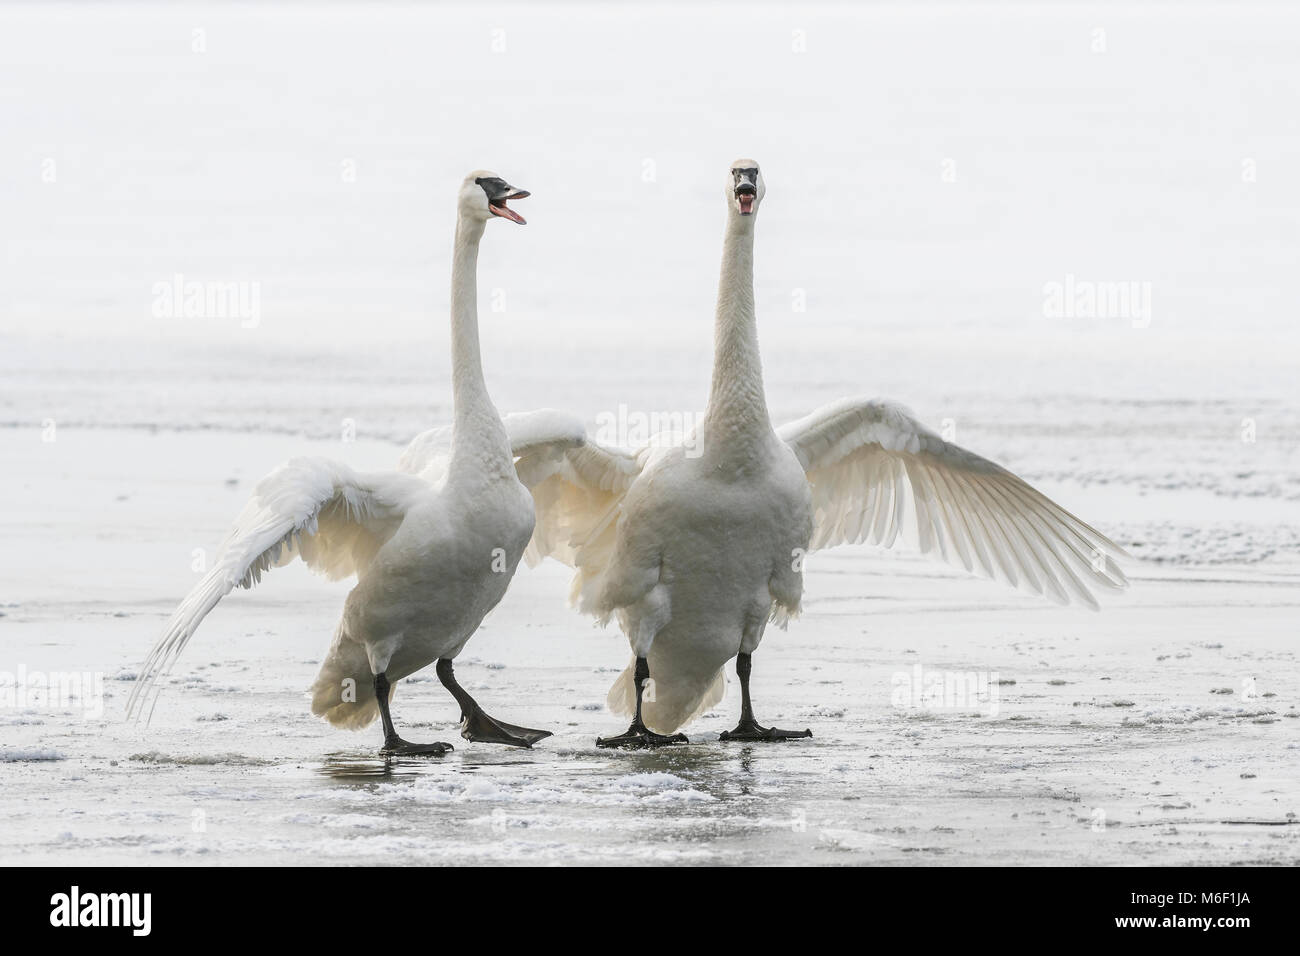 Trumpeter swans (Cygnus buccinator), St. Croix River between Minnesota & Wisconsin. Hudson, WI, USA, by Dominique - Stock Image